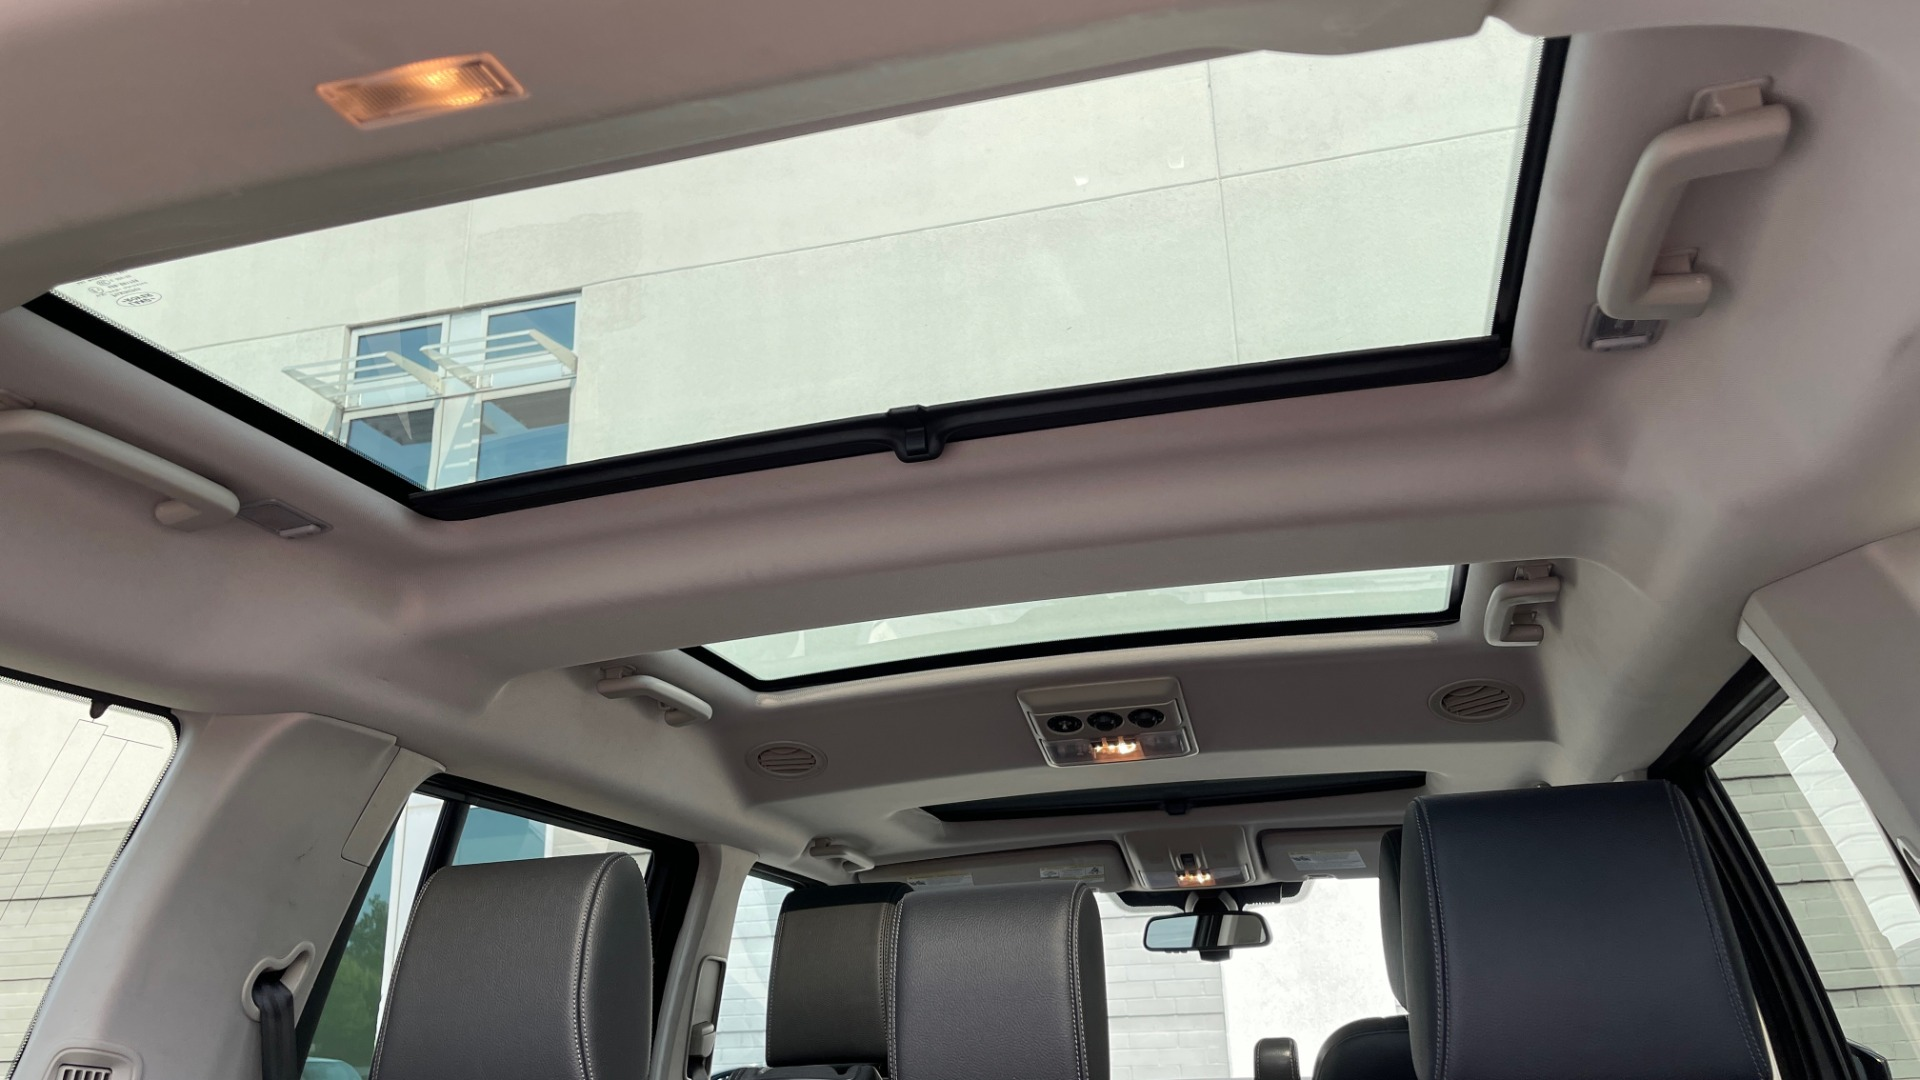 Used 2016 Land Rover LR4 HSE / NAV / SUNROOF / 3-ROW / MERIDIAN SOUND SYS / REARVIEW for sale $30,995 at Formula Imports in Charlotte NC 28227 19